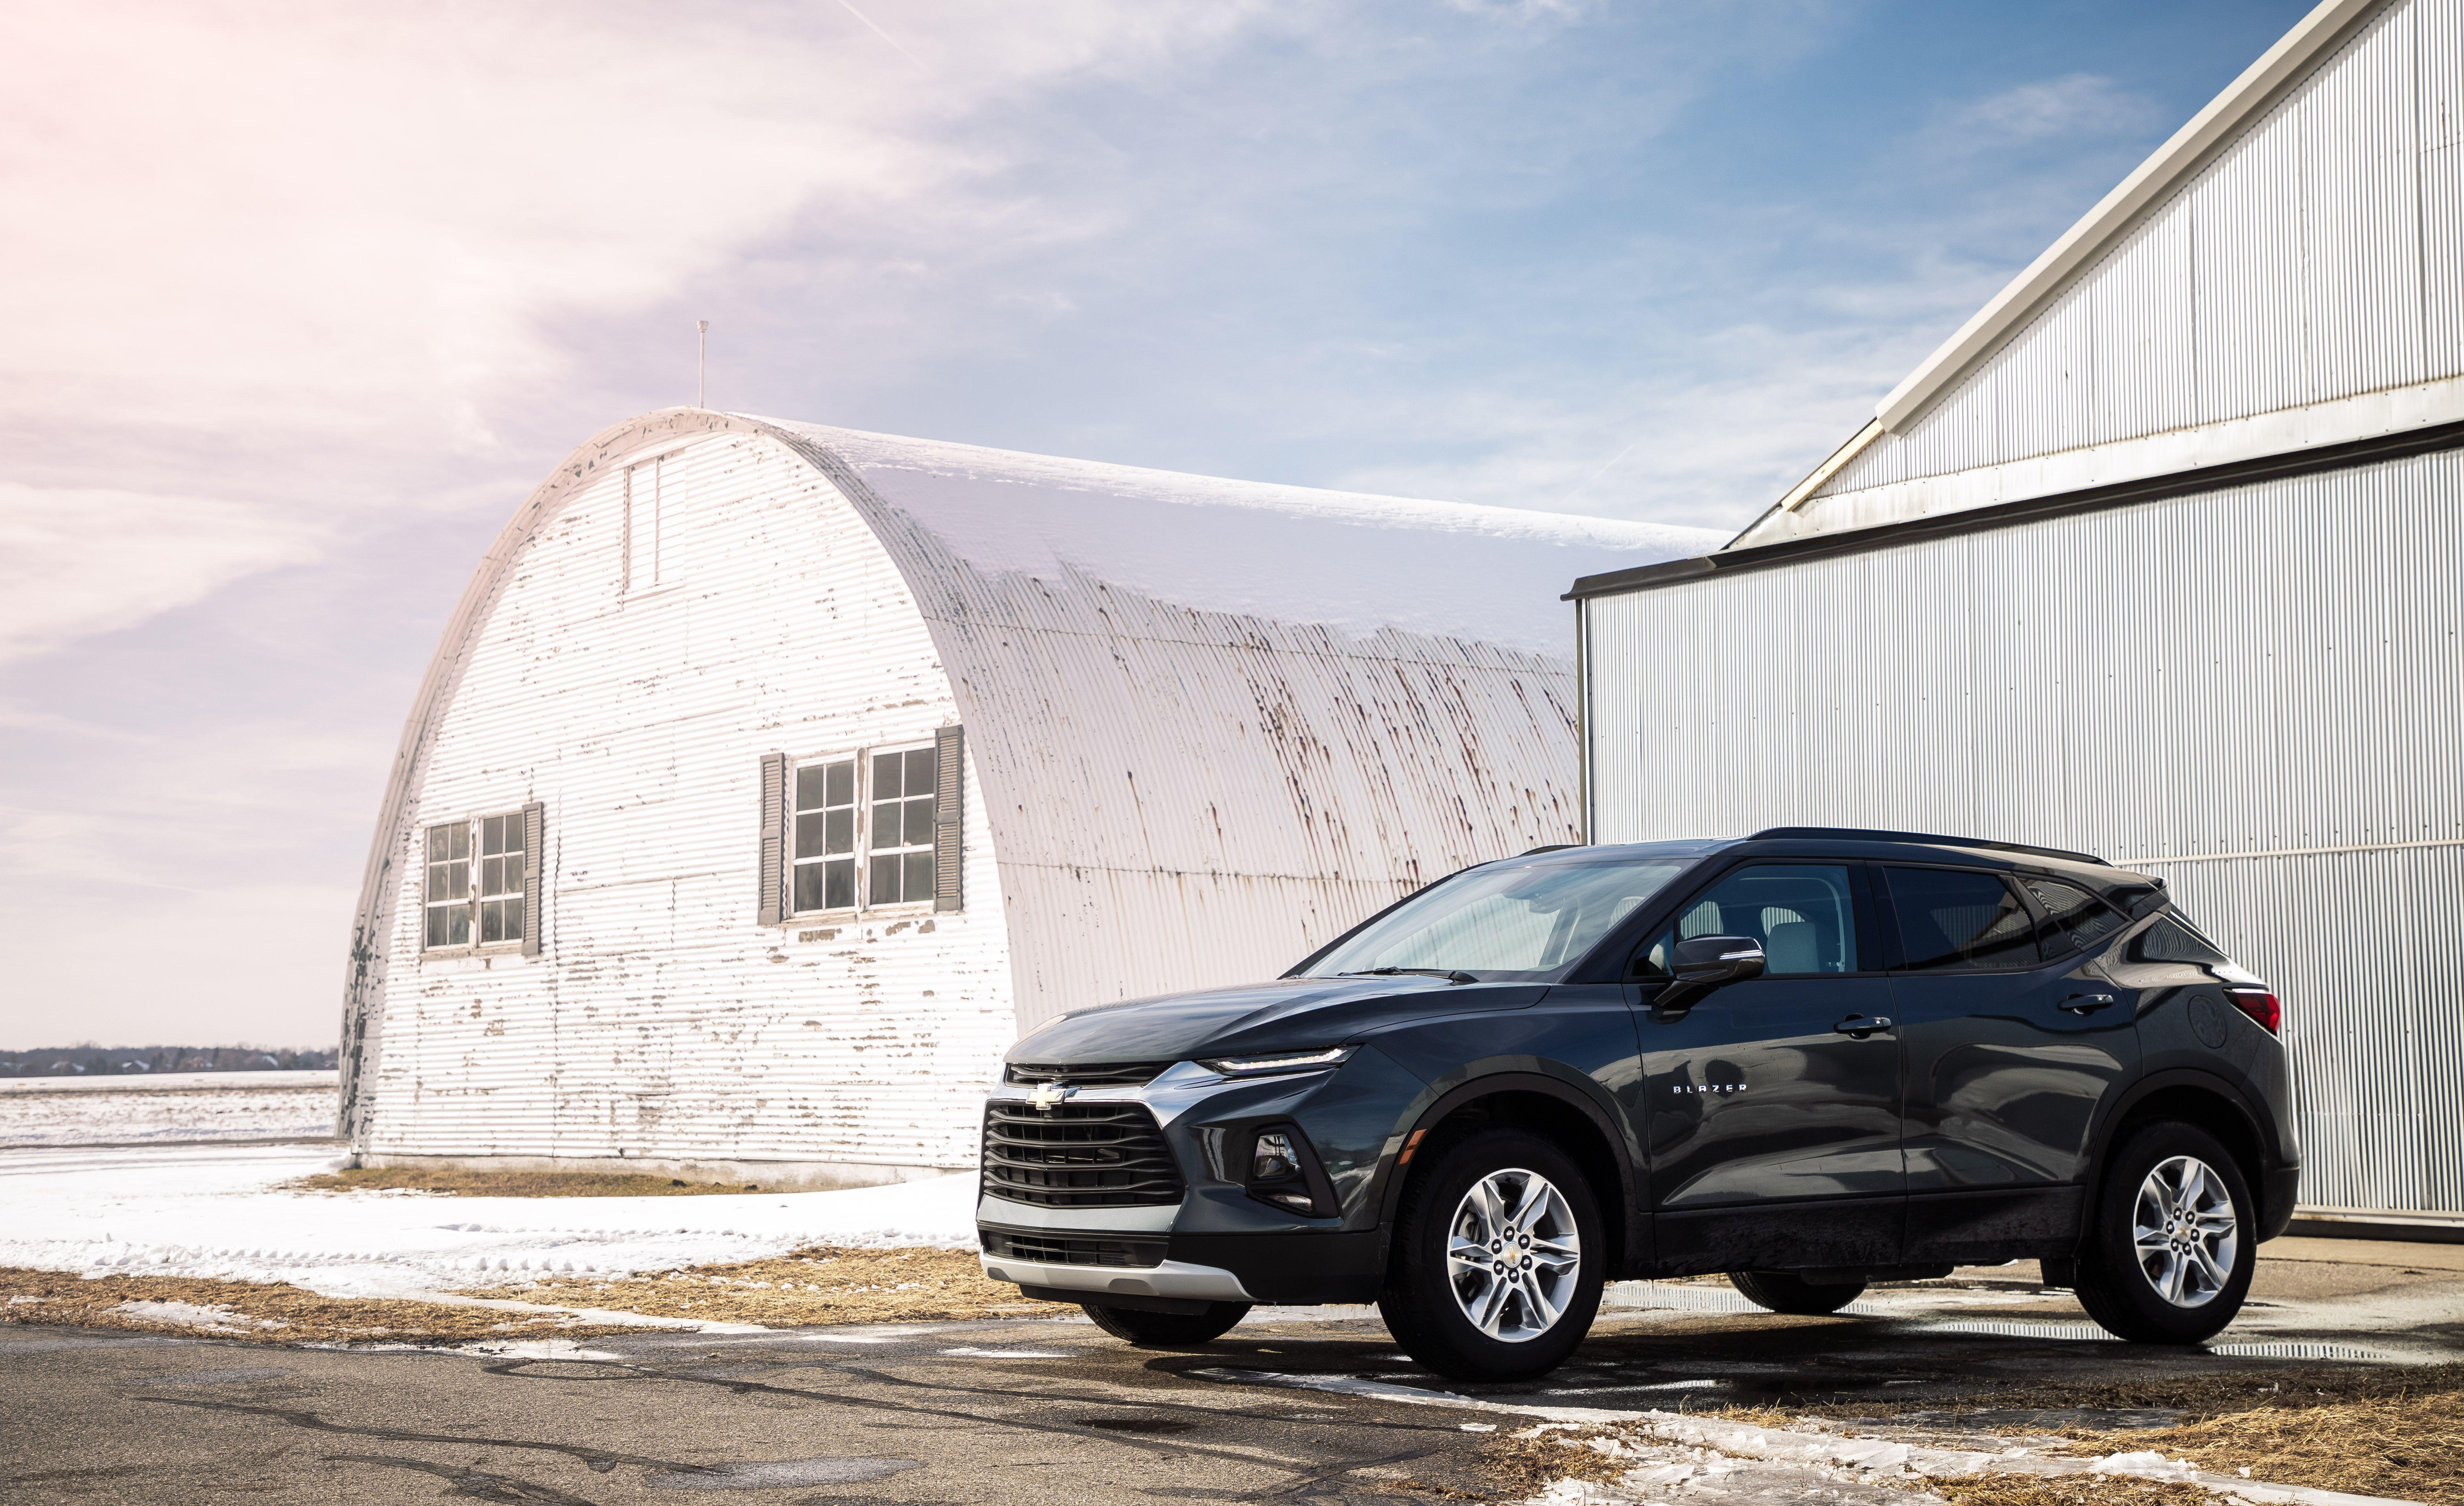 "<p>Chevrolet resurrects the Blazer nameplate for 2019, but this all-new crossover prioritizes style over the ruggedness of its legendary off-road predecessors. The two-row Blazer is positioned between <a href=""https://www.caranddriver.com/chevrolet/equinox"" rel=""nofollow noopener"" target=""_blank"" data-ylk=""slk:the compact Chevy Equinox"" class=""link rapid-noclick-resp"">the compact Chevy Equinox </a>and <a href=""https://www.caranddriver.com/chevrolet/traverse"" rel=""nofollow noopener"" target=""_blank"" data-ylk=""slk:the three-row Chevy Traverse"" class=""link rapid-noclick-resp"">the three-row Chevy Traverse</a>. Its mid-size classification pits it head to head against other two-row rivals such as <a href=""https://www.caranddriver.com/ford/edge"" rel=""nofollow noopener"" target=""_blank"" data-ylk=""slk:the Ford Edge"" class=""link rapid-noclick-resp"">the Ford Edge</a> and <a href=""https://www.caranddriver.com/honda/passport"" rel=""nofollow noopener"" target=""_blank"" data-ylk=""slk:the Honda Passport"" class=""link rapid-noclick-resp"">the Honda Passport</a>. While the Blazer is available with a potent 308-hp V-6 engine and all-wheel drive, entry-level models such as the one we tested for this review are available only with front-wheel drive and a dutiful 193-hp four-cylinder. We'll detail much of the content and capabilities that make this Blazer so budget friendly.</p>"